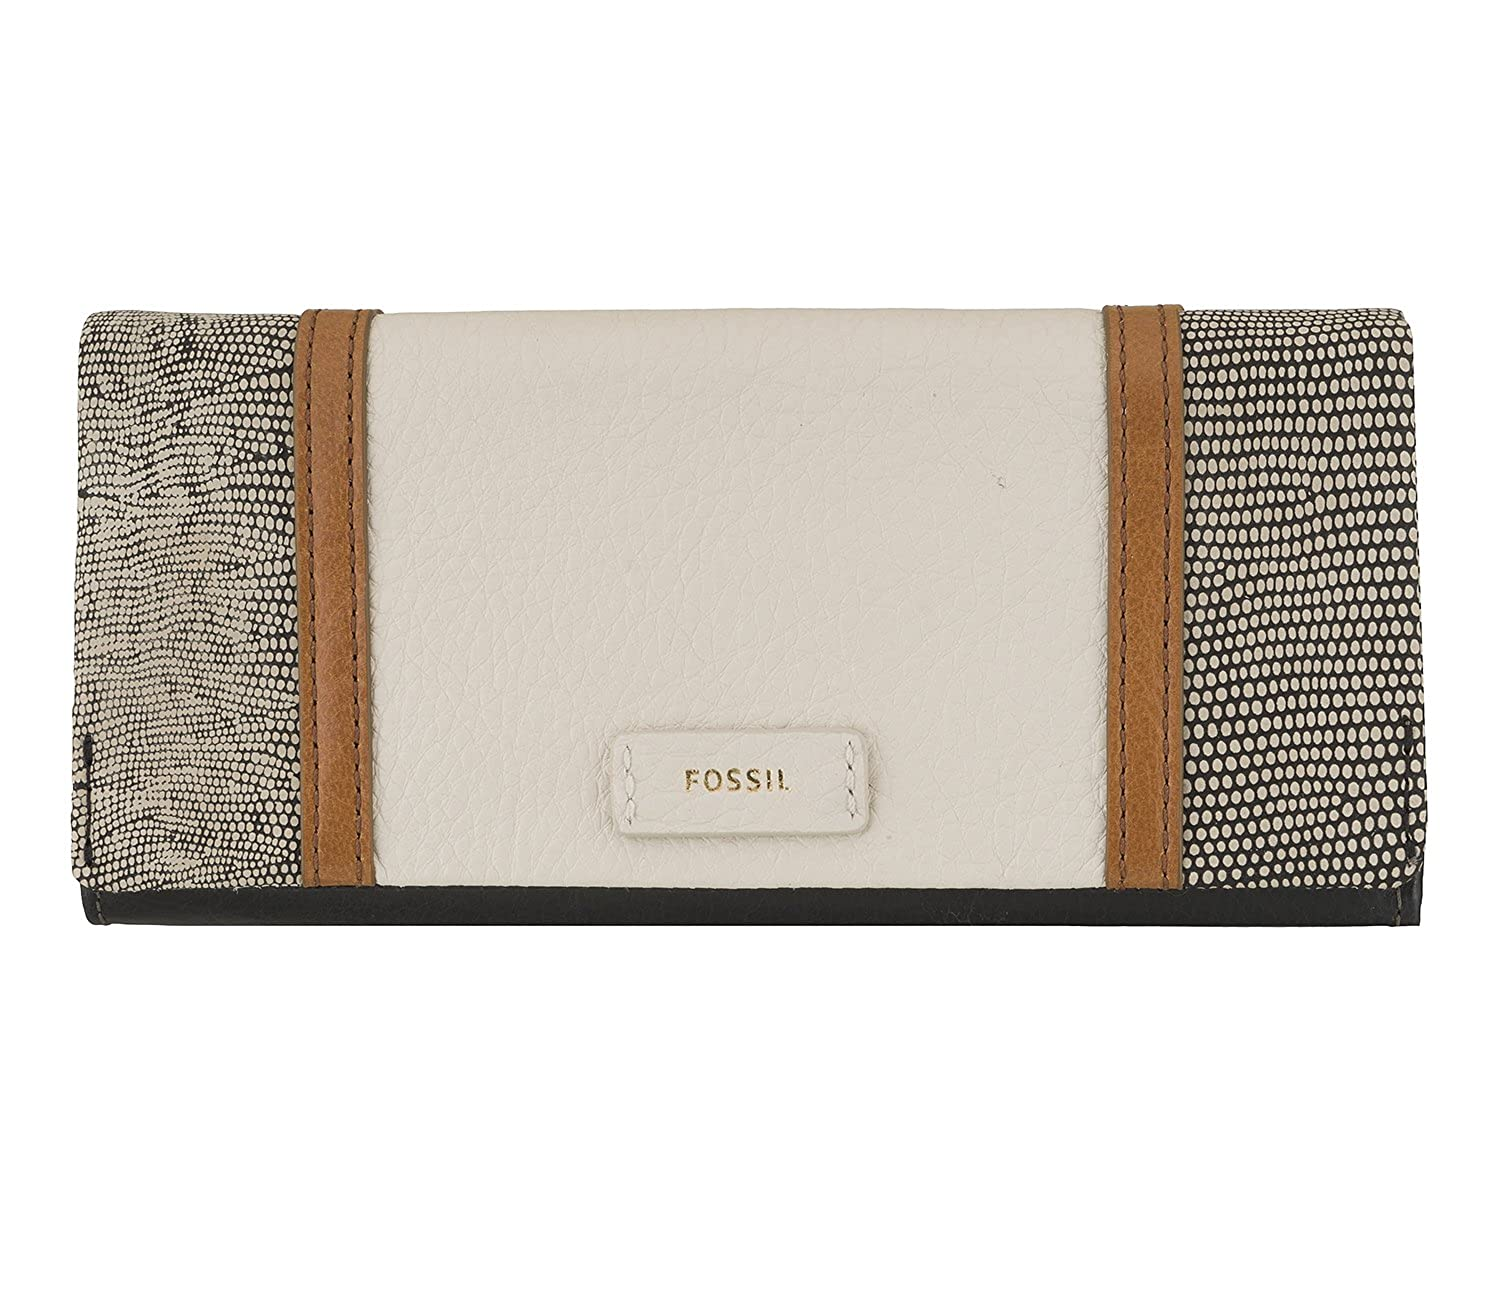 Fossil Ellis 29 Monedero des mujeres blanco y negro: Amazon ...